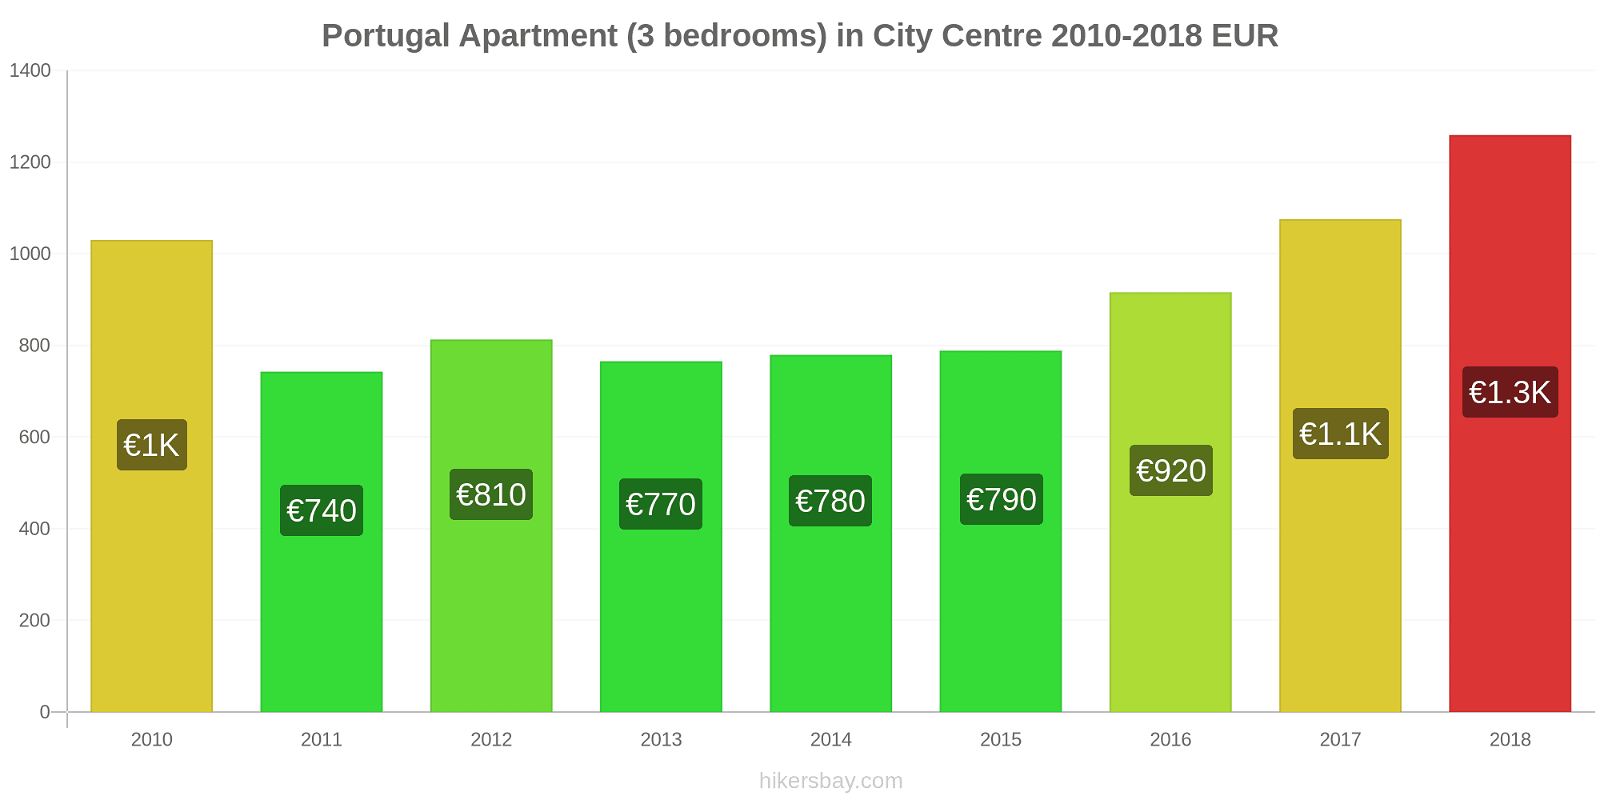 Portugal price changes Apartment (3 bedrooms) in City Centre hikersbay.com